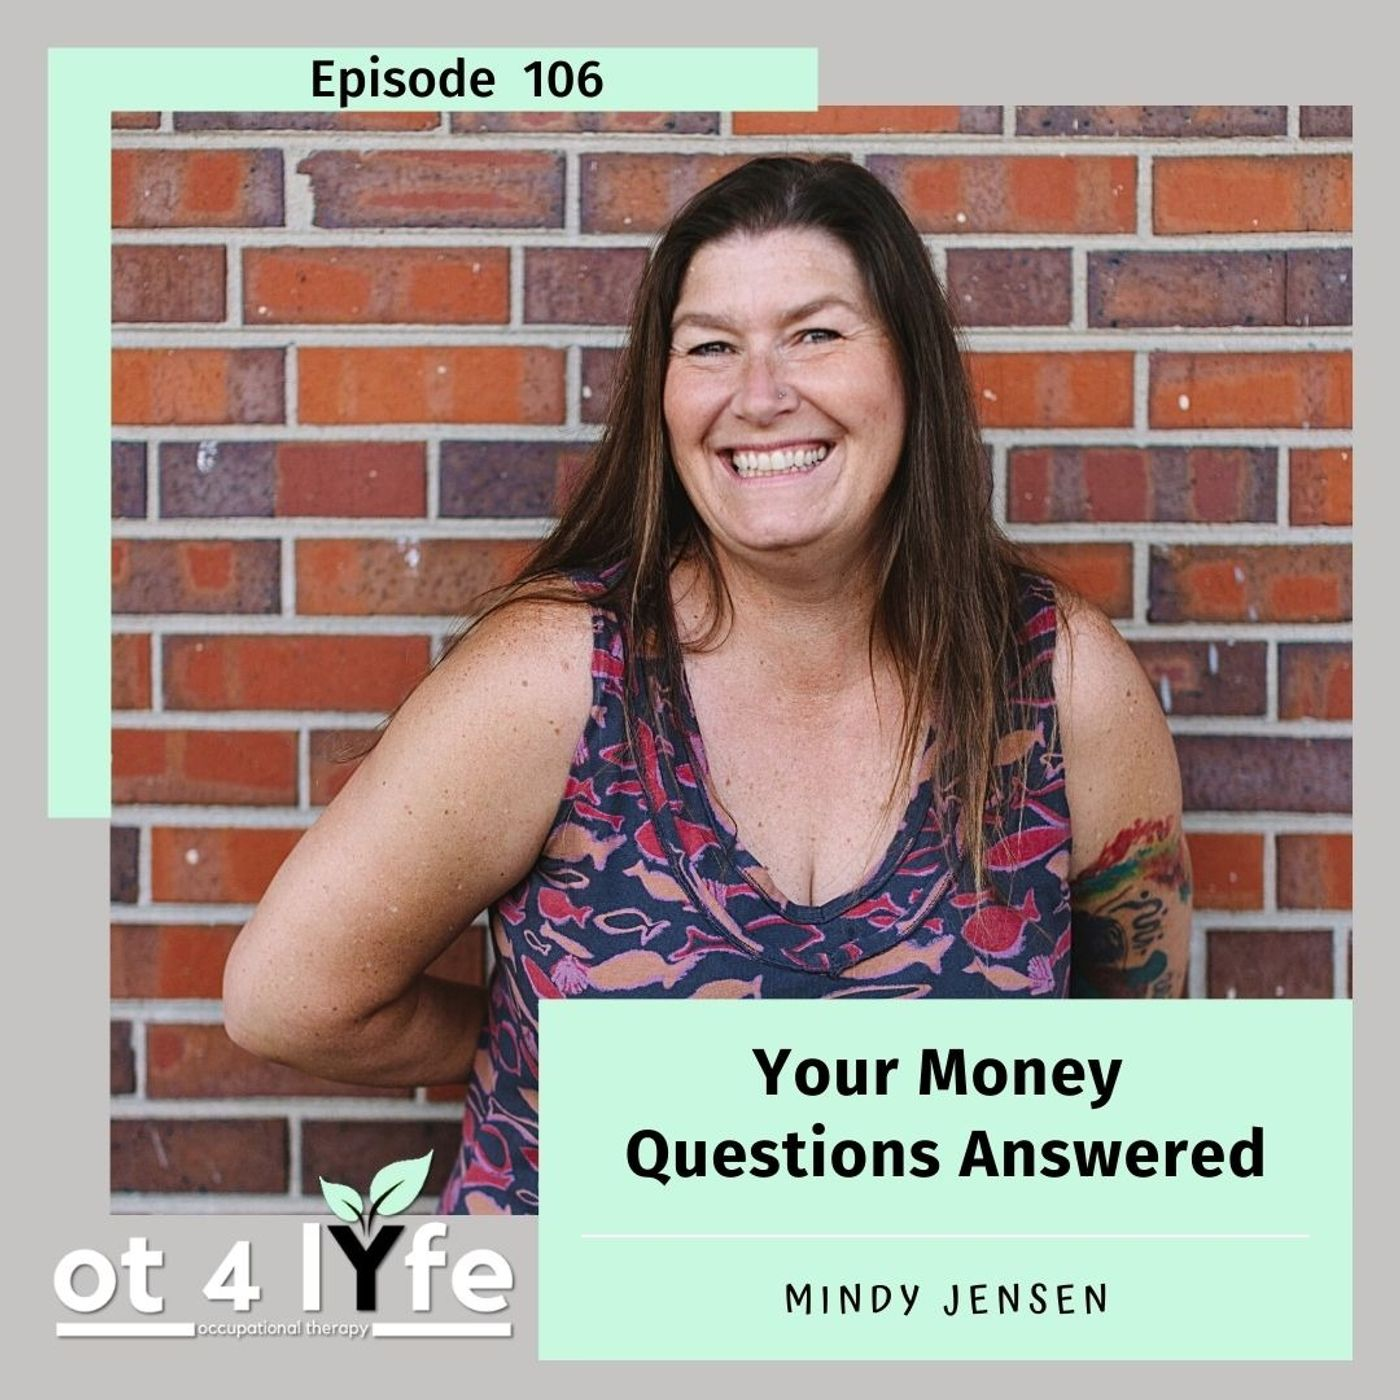 Your Money Questions Answered